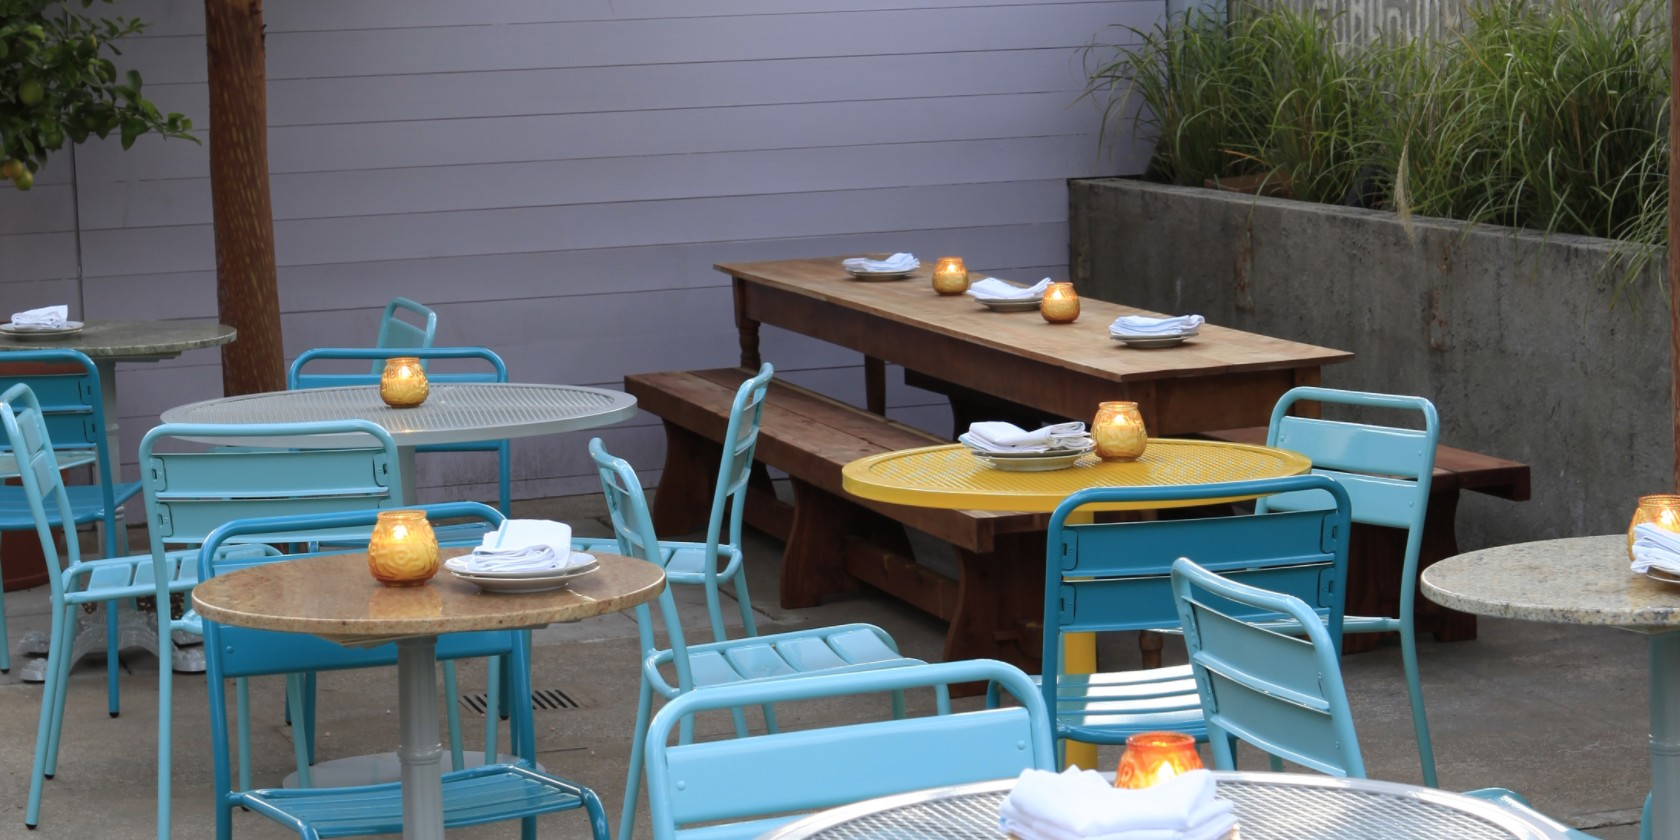 Brunch Sunny Spot (90292 Los Angeles)